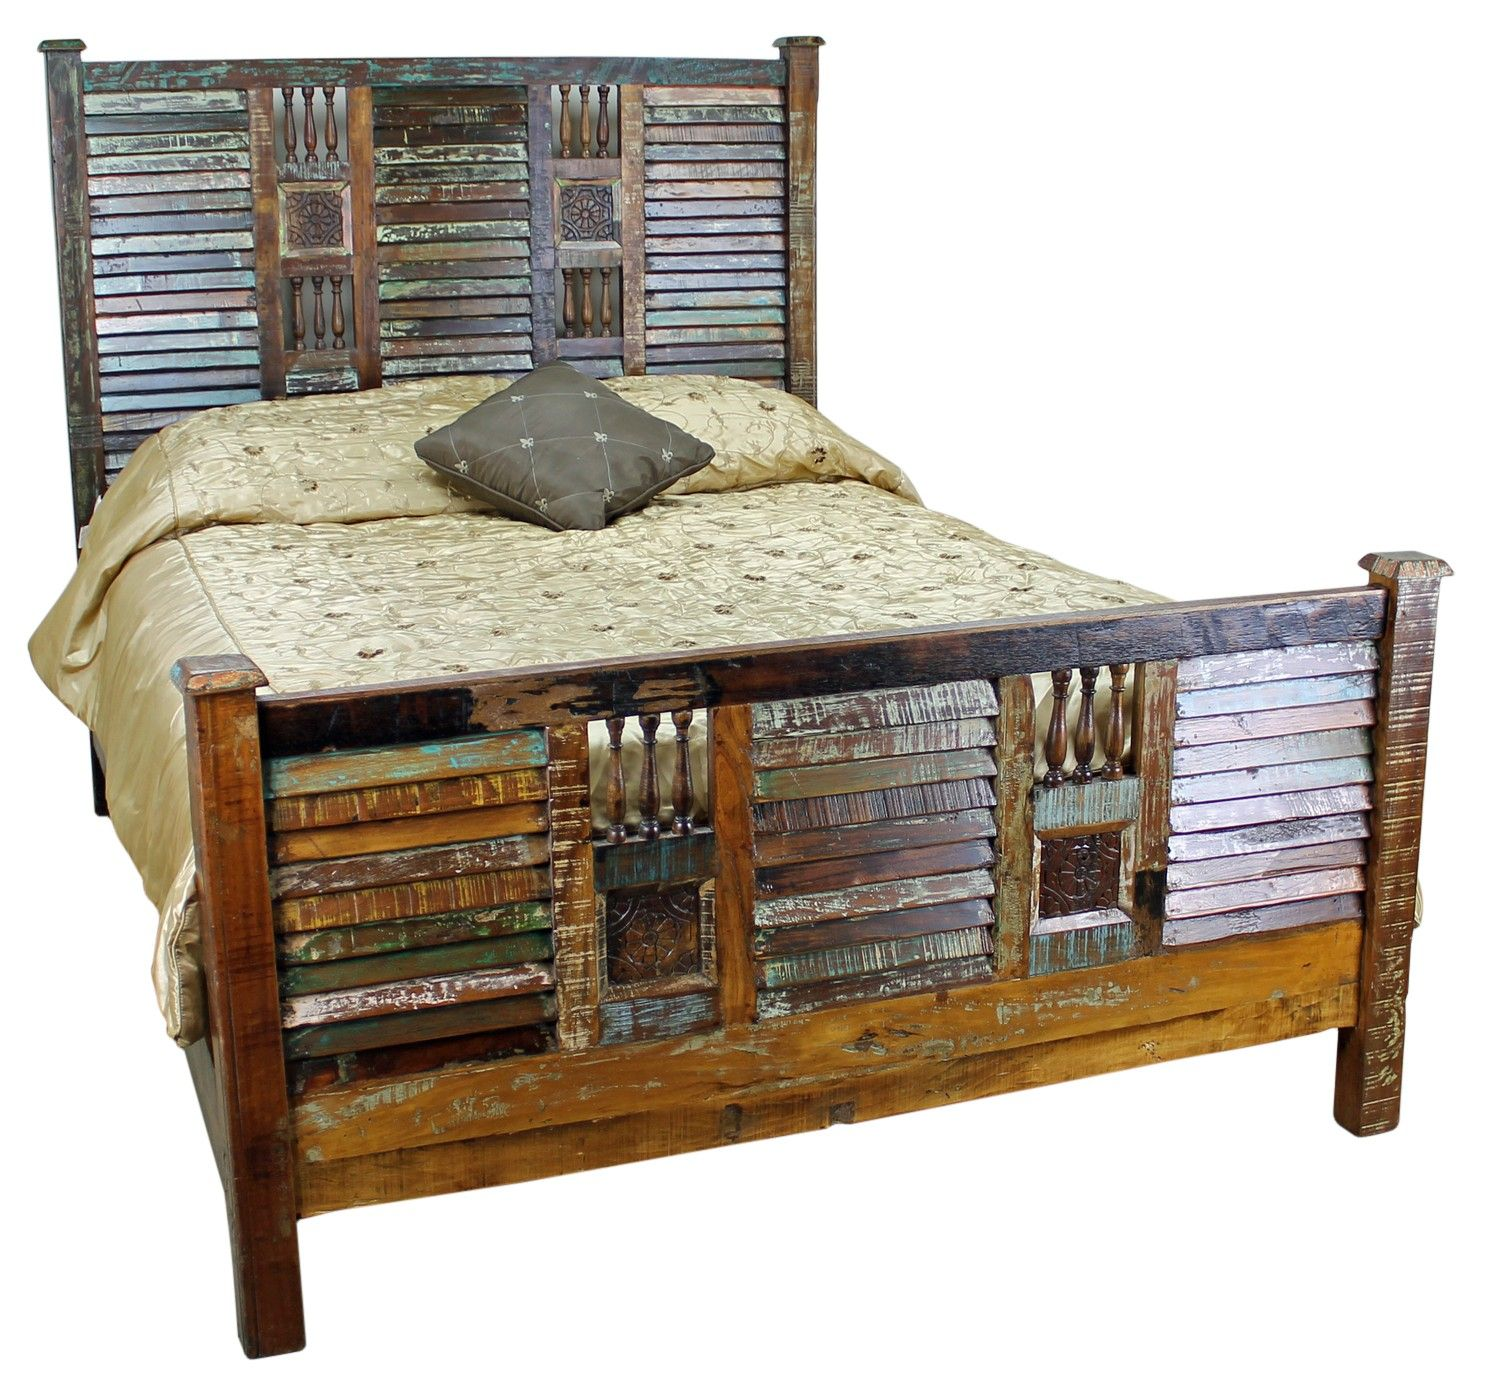 Bedroom Furniture Reclaimed Wood mexicali rustic wood bed set furniture | rustic wood bed, rustic